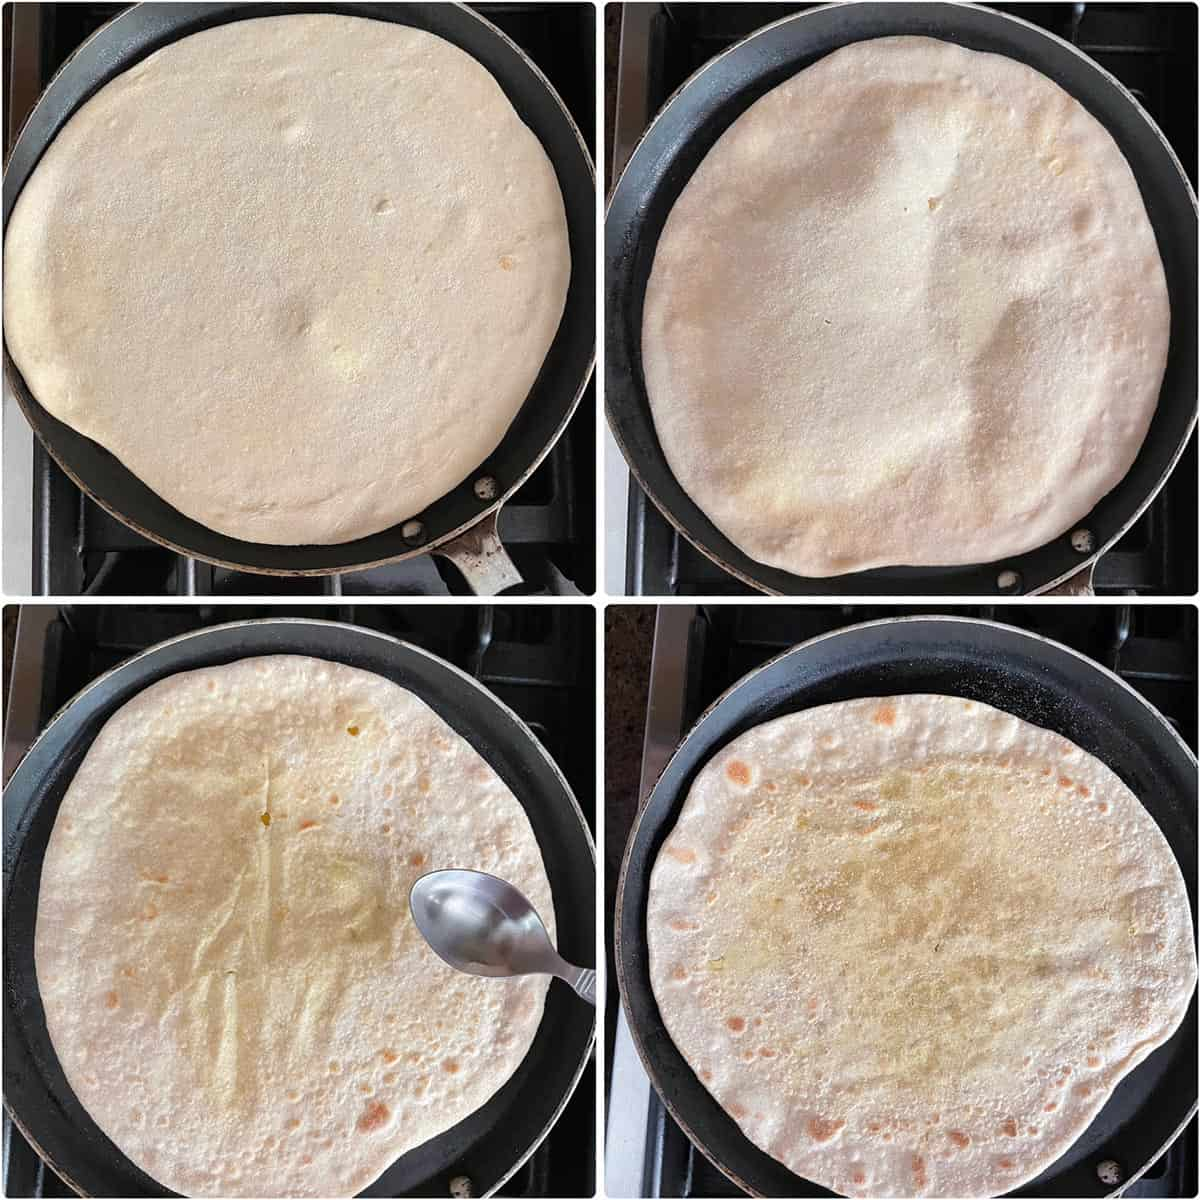 side by side photos showing the cooking of flatbread on griddle